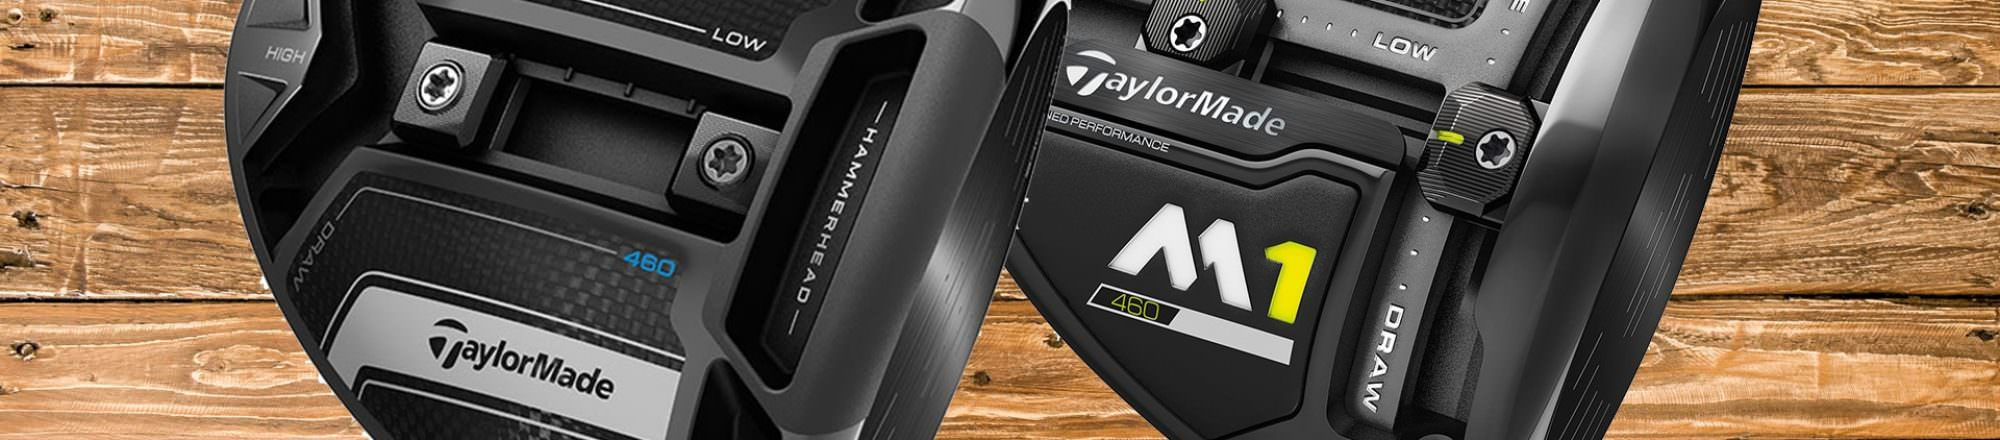 How does the TaylorMade M3 driver stand up to its M1 predecessor?